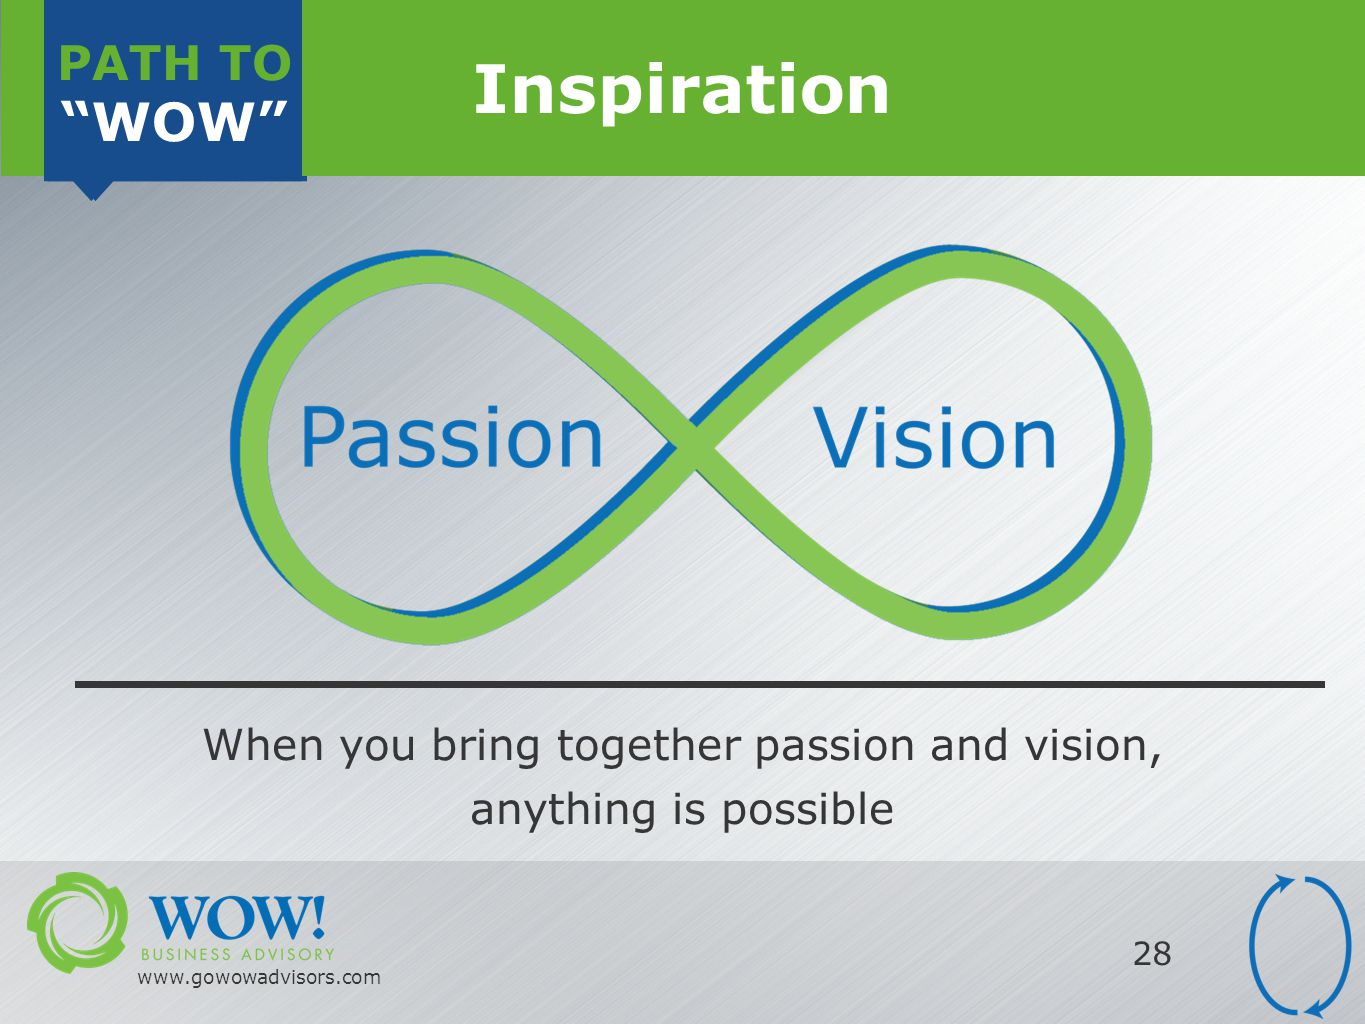 PATH TO WOW PATH TO WOW www.gowowadvisors.com 28 When you bring together passion and vision, anything is possible Inspiration